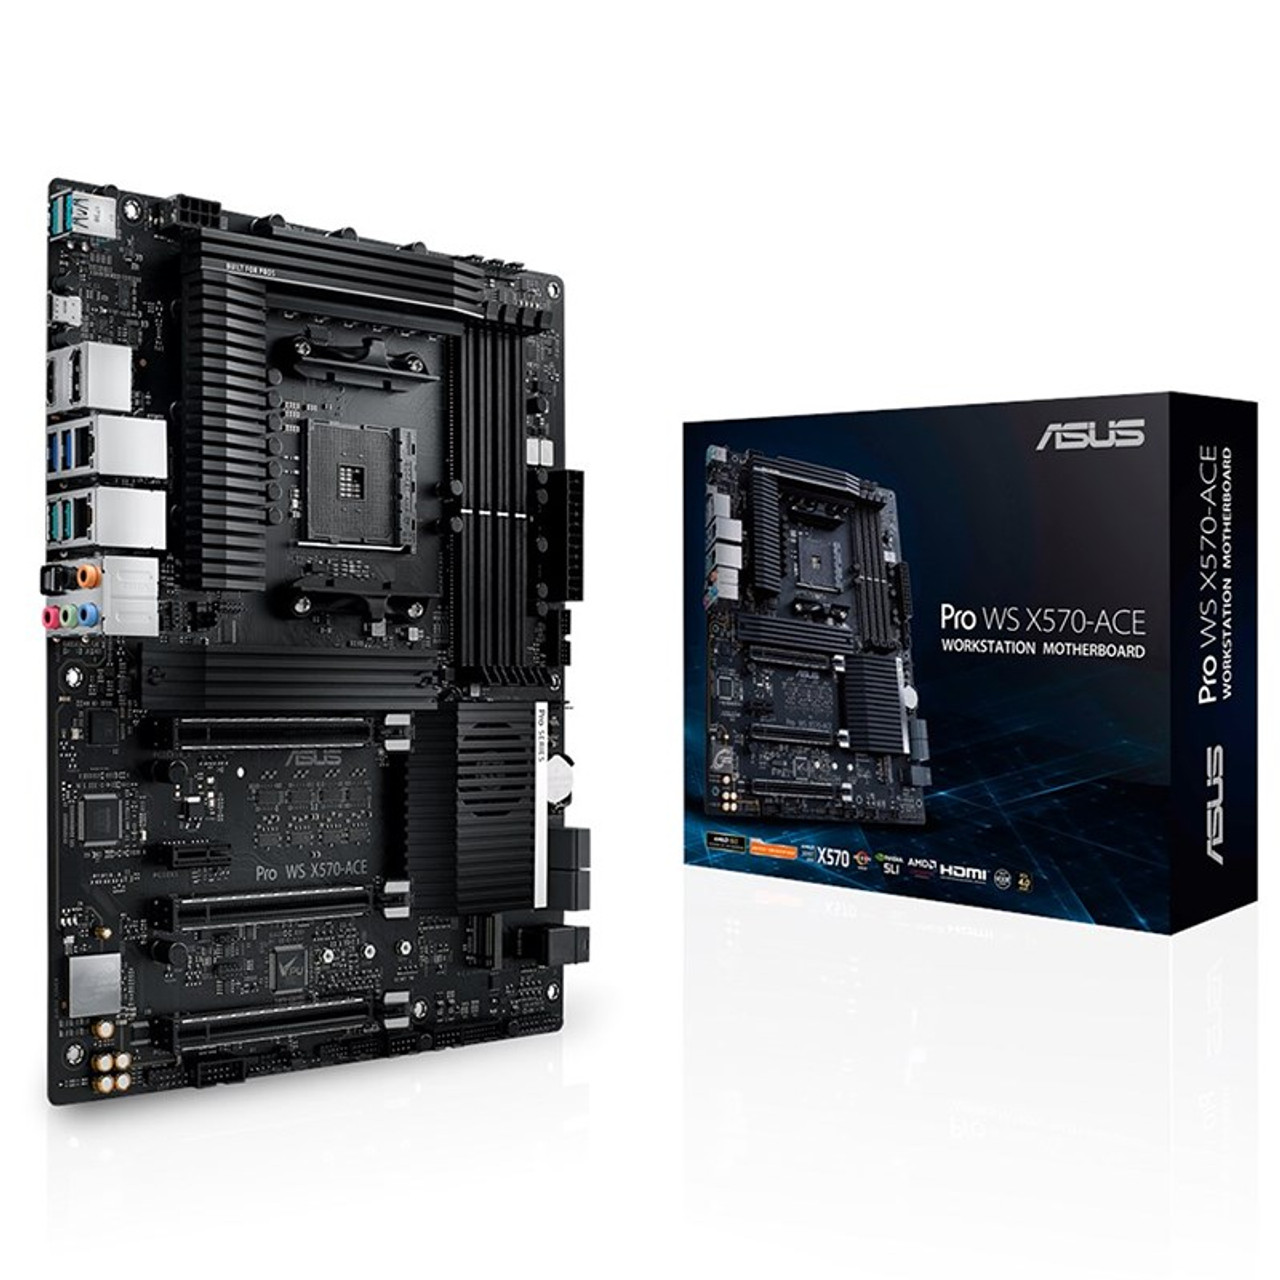 Product image for Asus X570 ACE Pro WS Motherboard | CX Computer Superstore